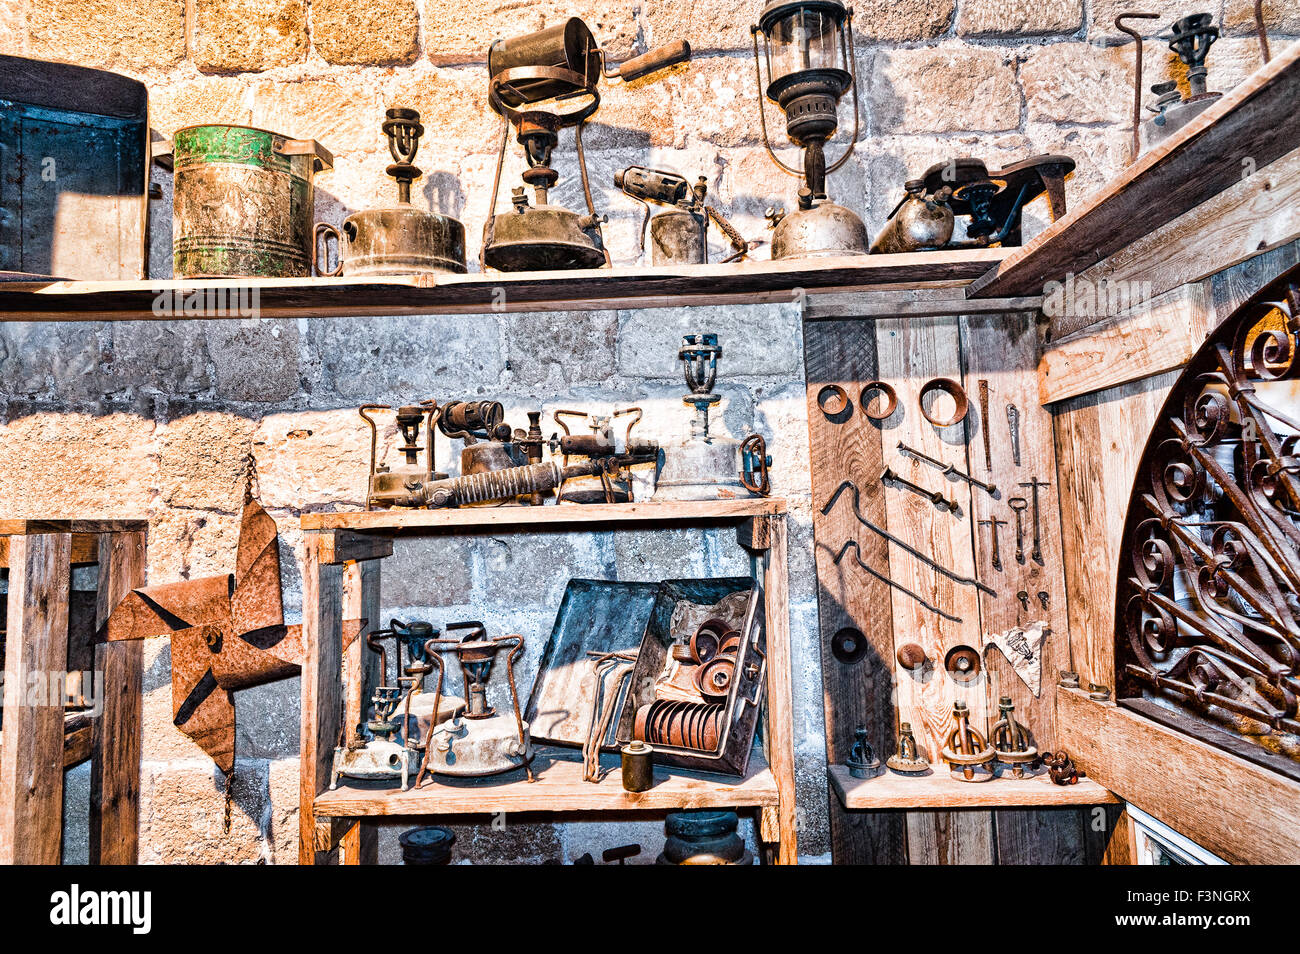 Junk shop filled with things that are gathering dust on the shelves. Bronza and copper utensils, stoves and kerosene - Stock Image